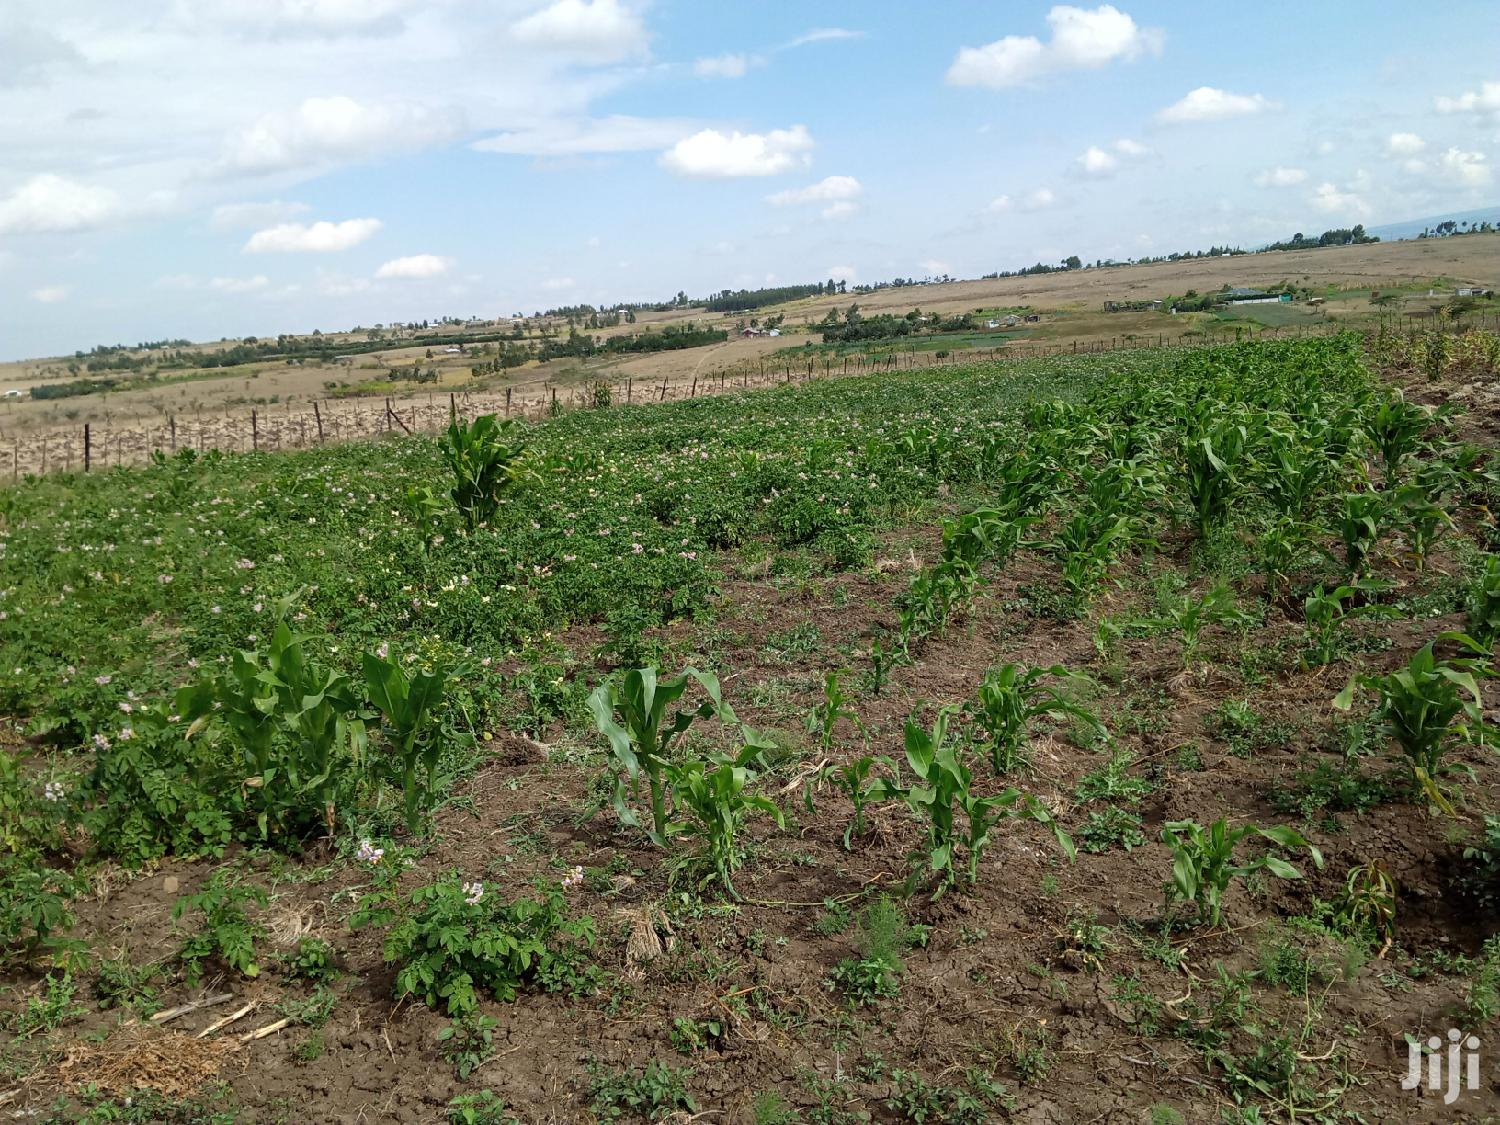 2acres Land for Sale at Makutano,Near Wiyumiririe Idp Area | Land & Plots For Sale for sale in Ngobit, Laikipia, Kenya